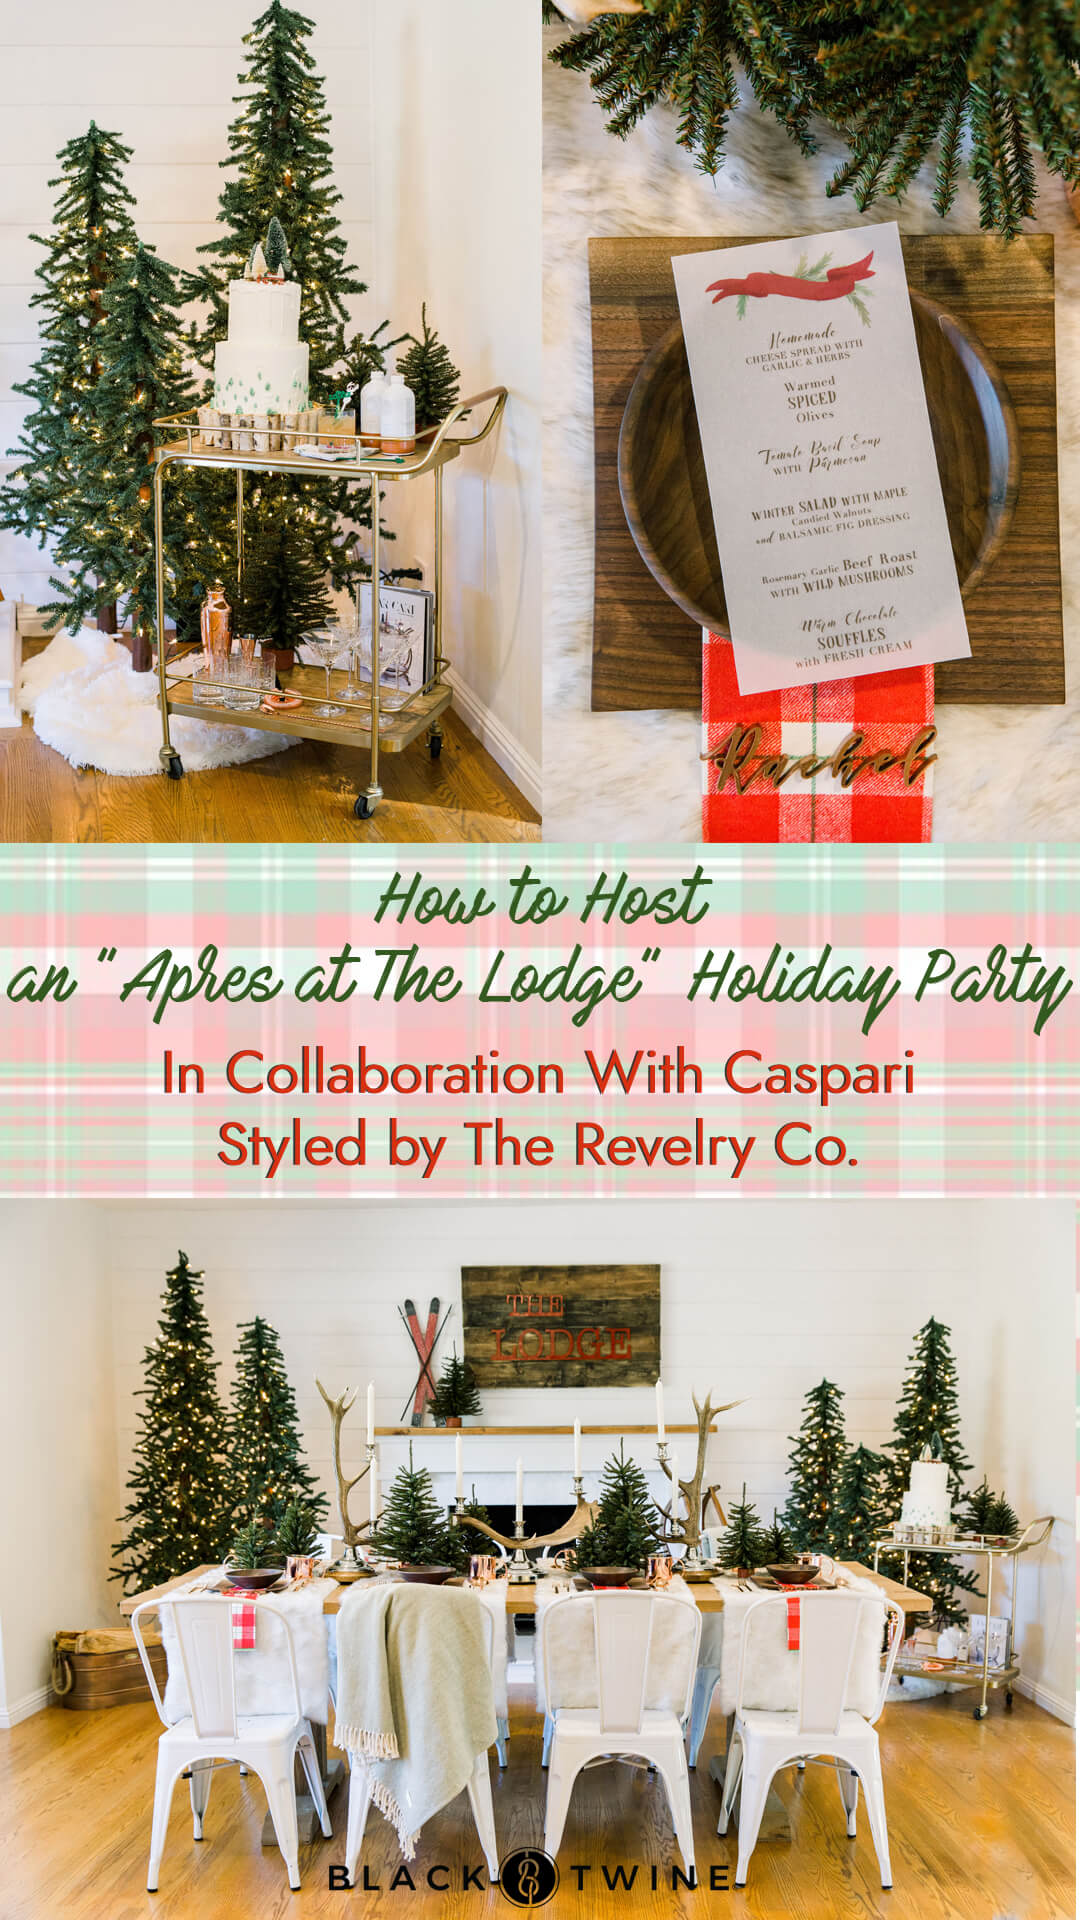 "Tablescape, Place Setting from ""Apres at The Lodge"" Holiday Party Styled by The Revelry Co 